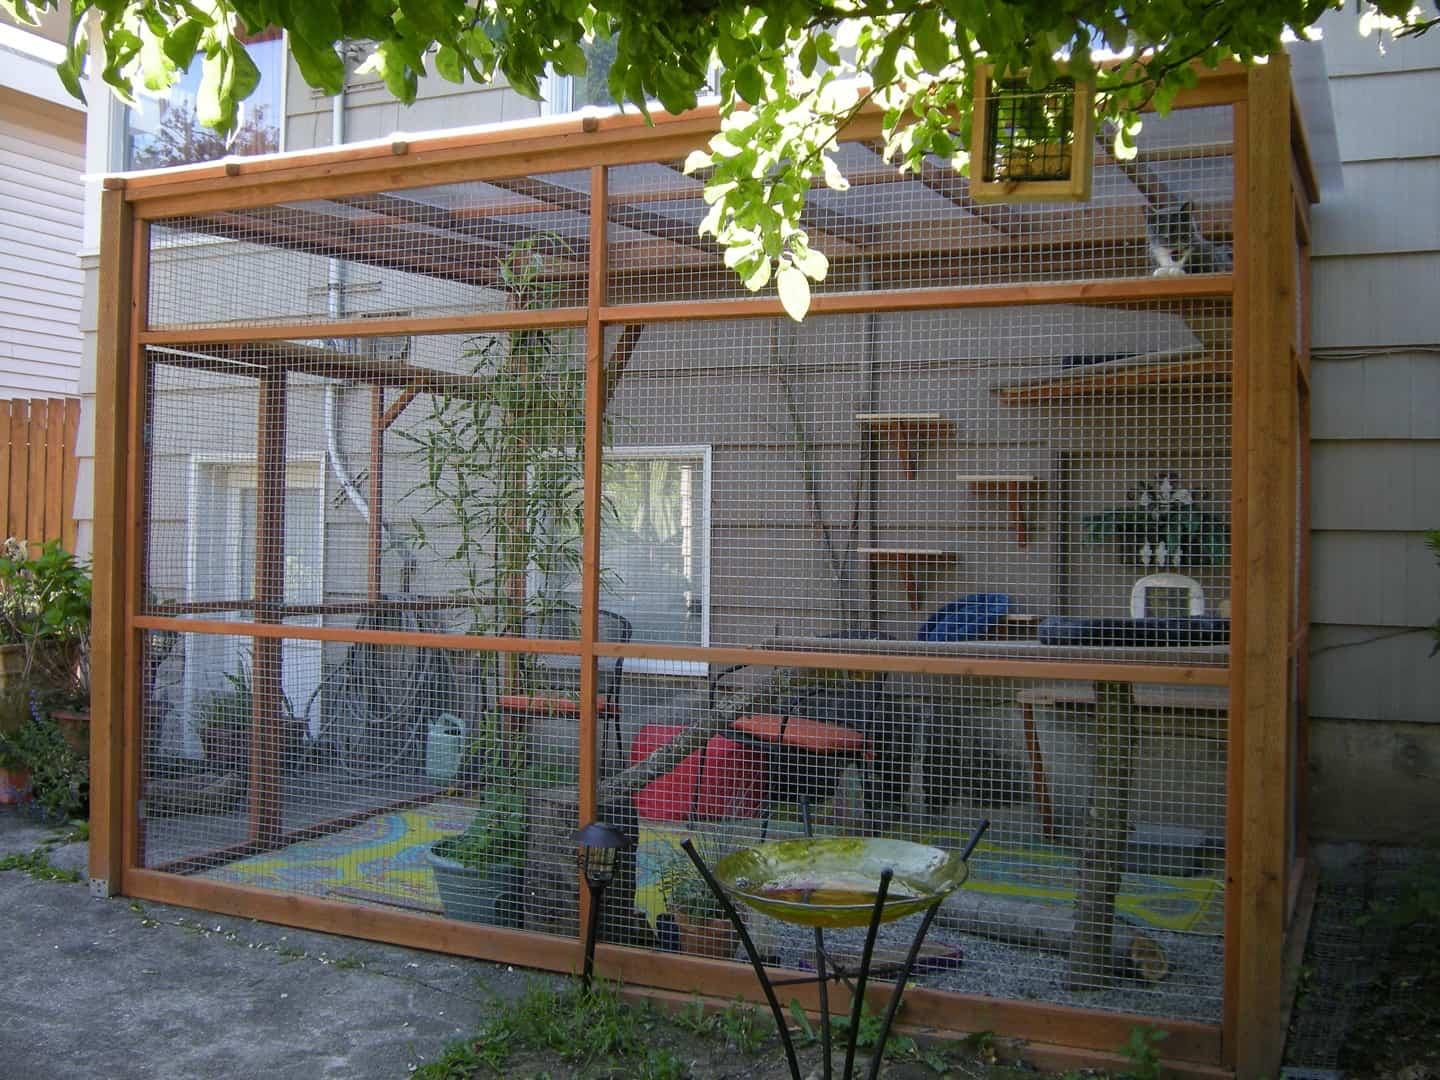 Wooden frame enclosure with wall climbers and chairs for sitting